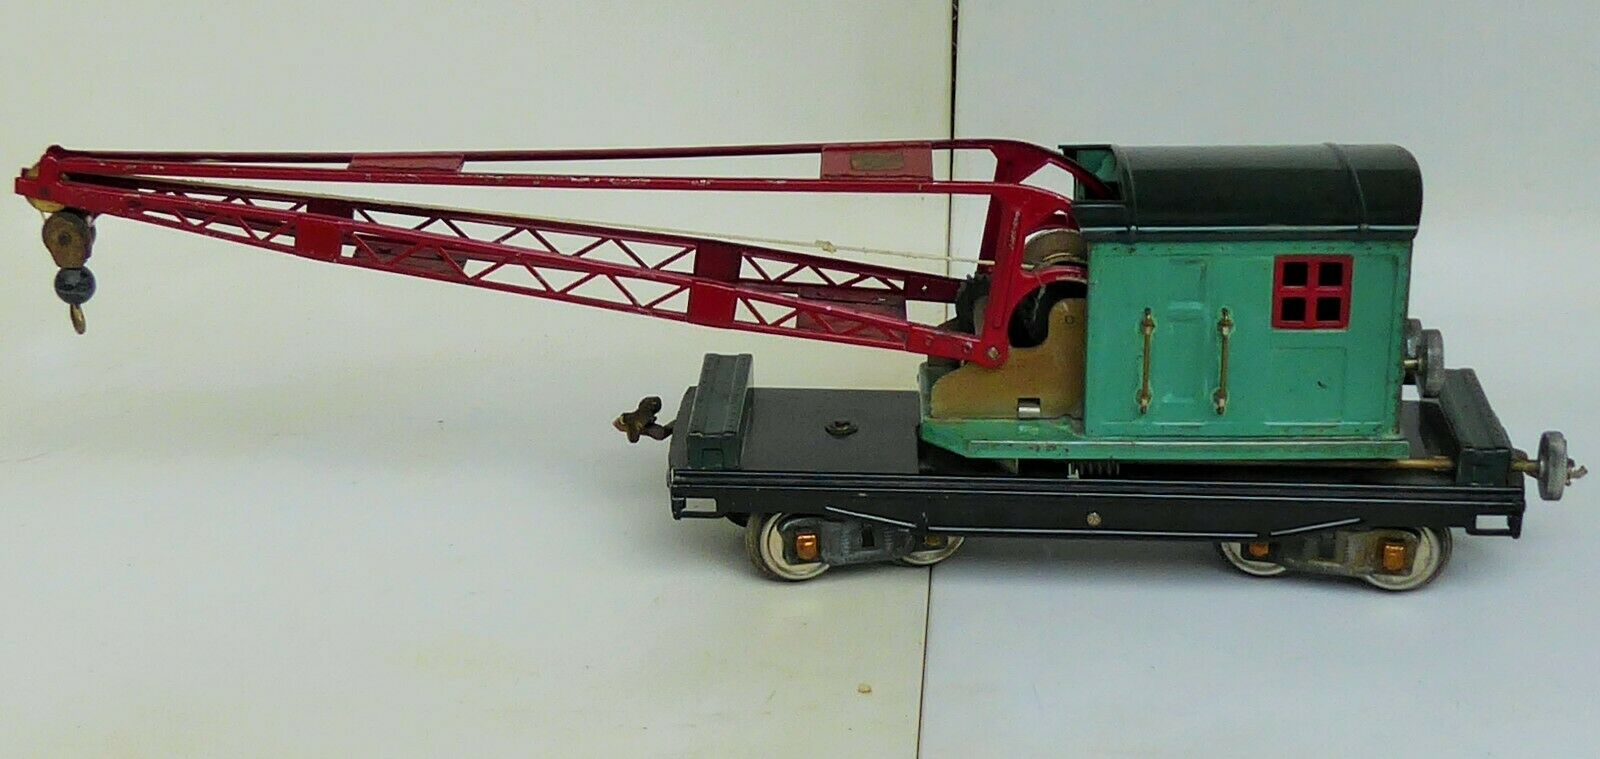 1926-40 LIONEL OPERATING CRANE No.219 STANDARD GAUGE ALL ORIGINAL 23  LONG